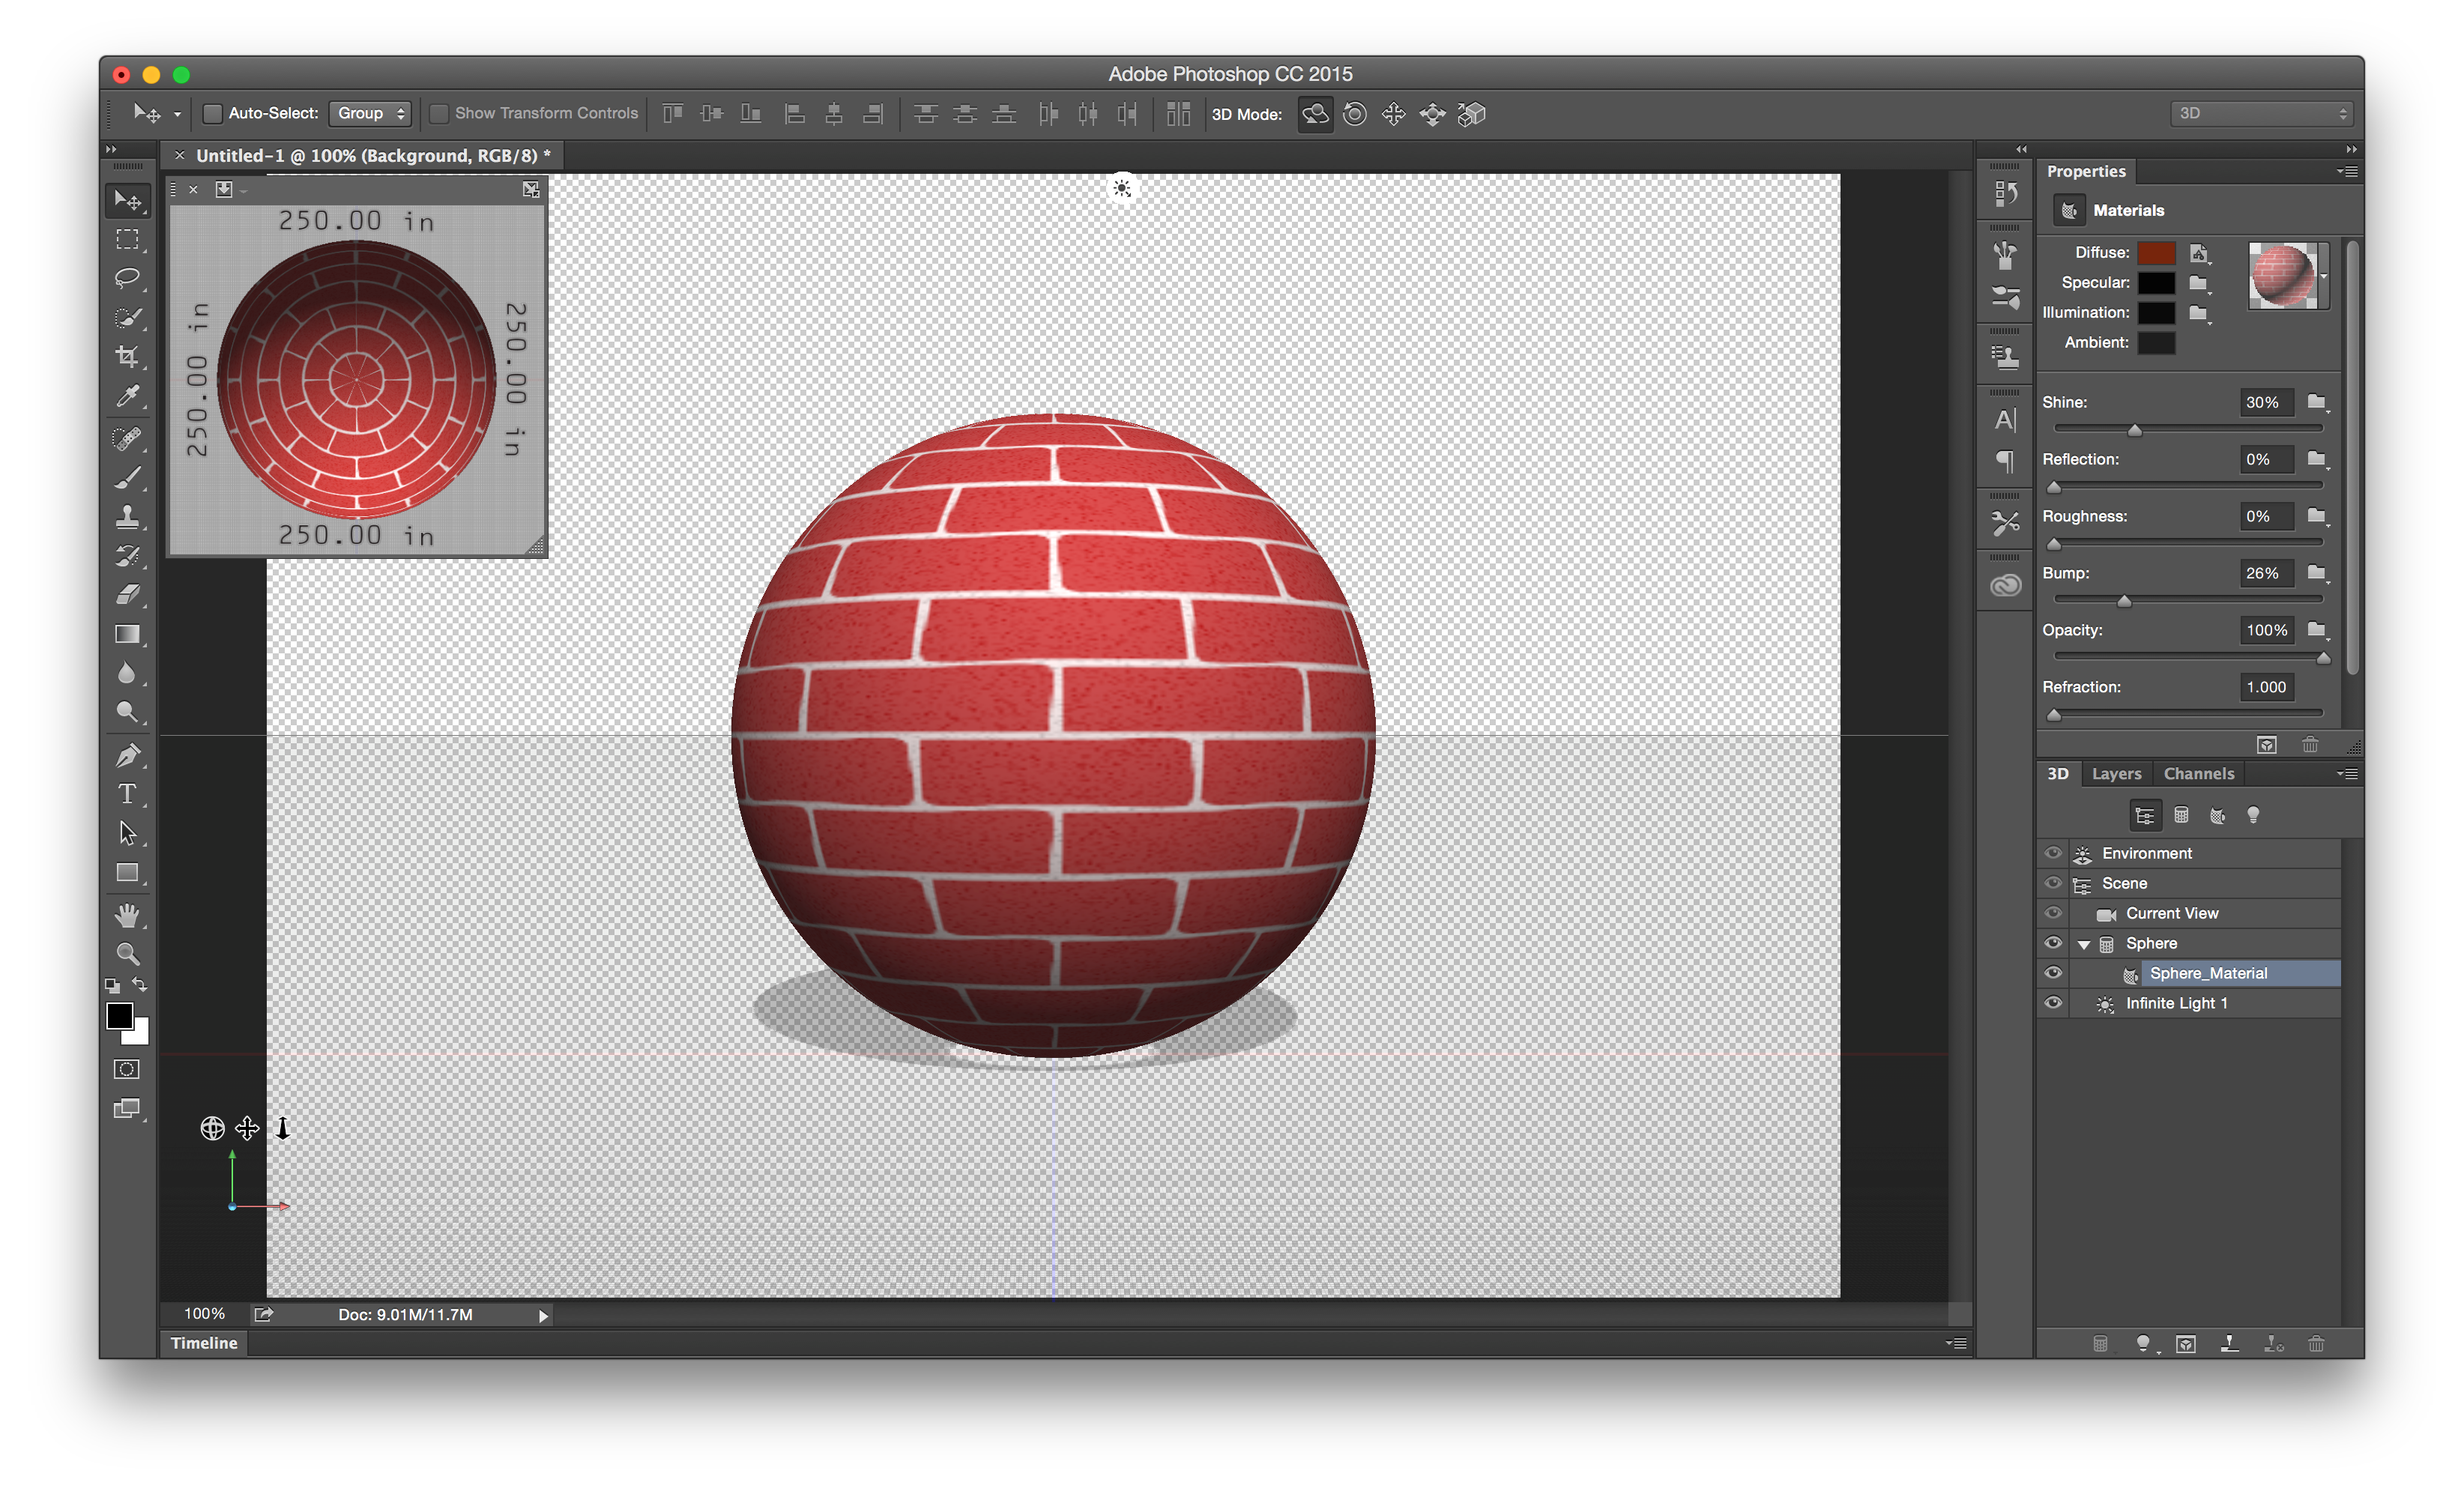 Photoshop texture in the 3D panel